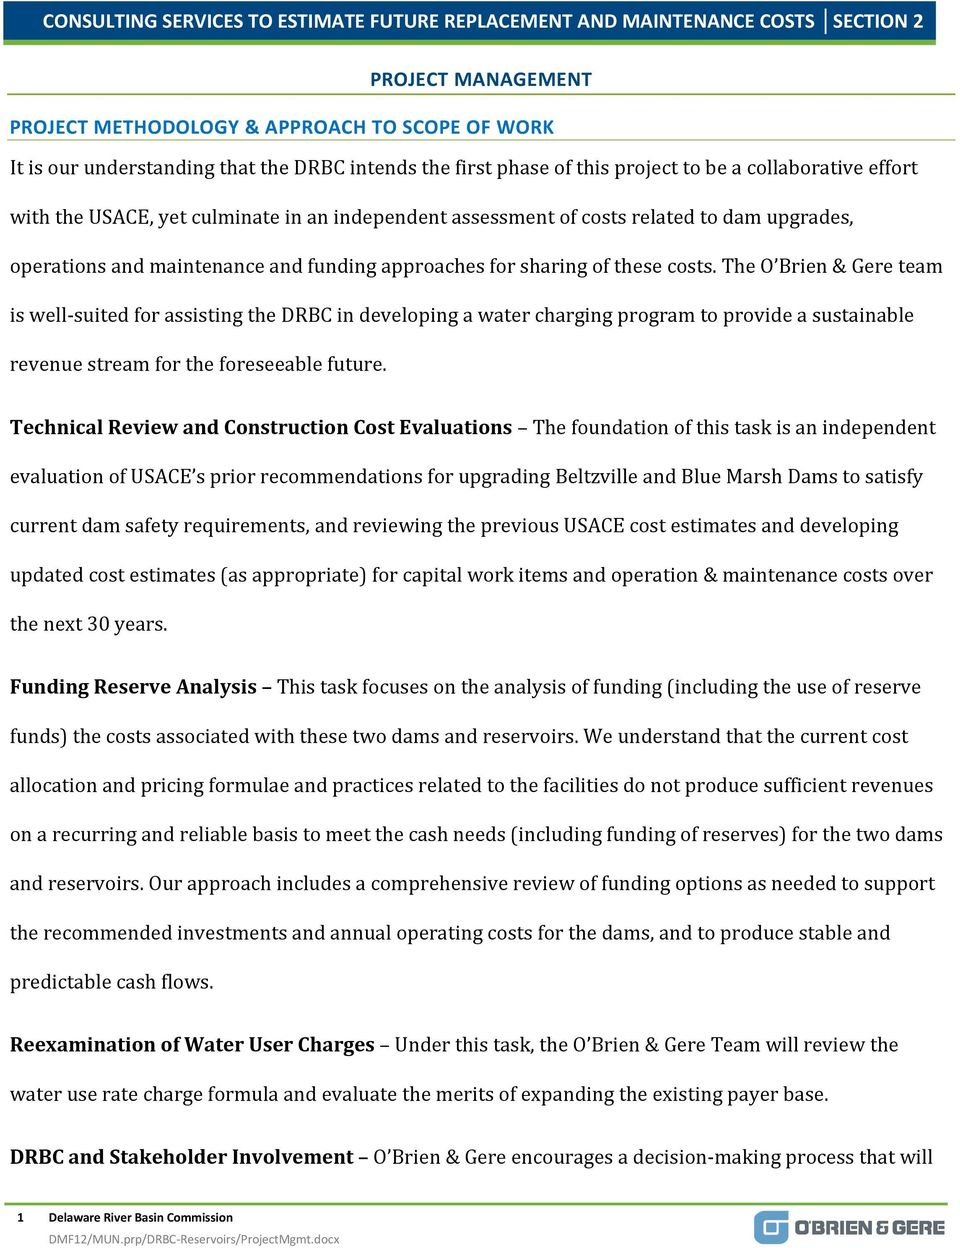 for sharing of these costs. The O Brien & Gere team is well-suited for assisting the DRBC in developing a water charging program to provide a sustainable revenue stream for the foreseeable future.